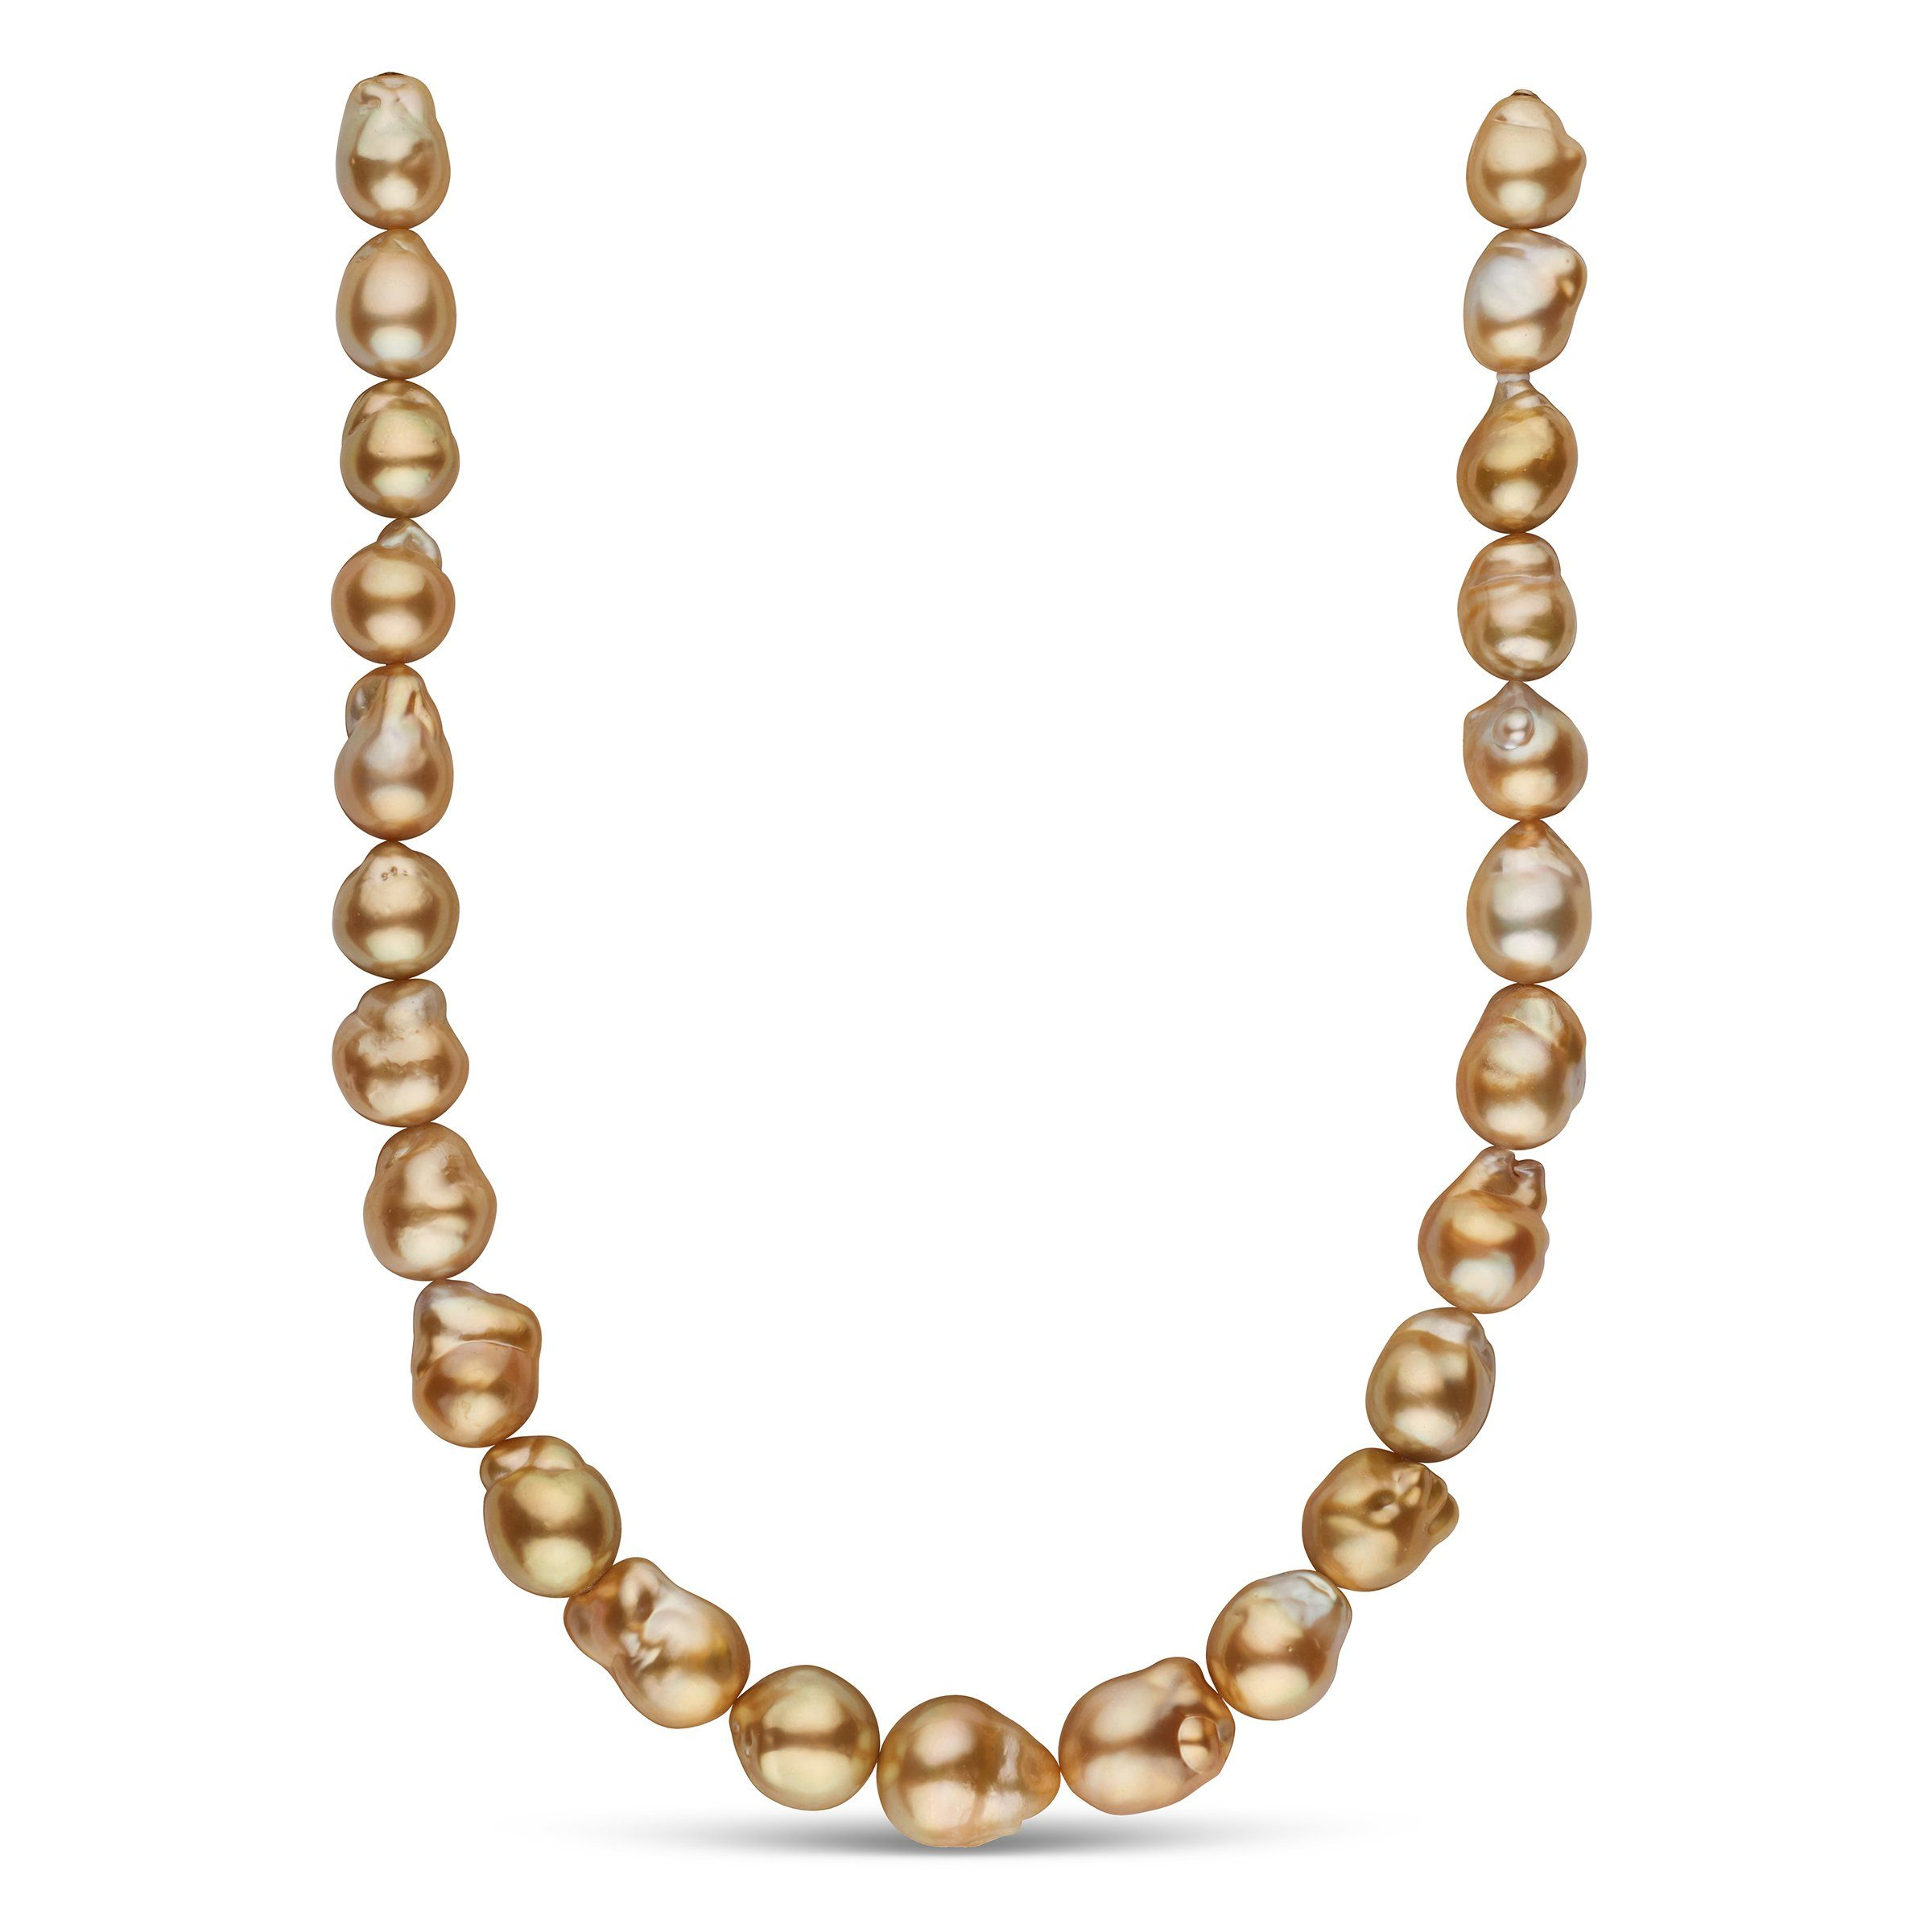 The Marvelous Mrs. Maisel Golden South Sea Pearl Necklace